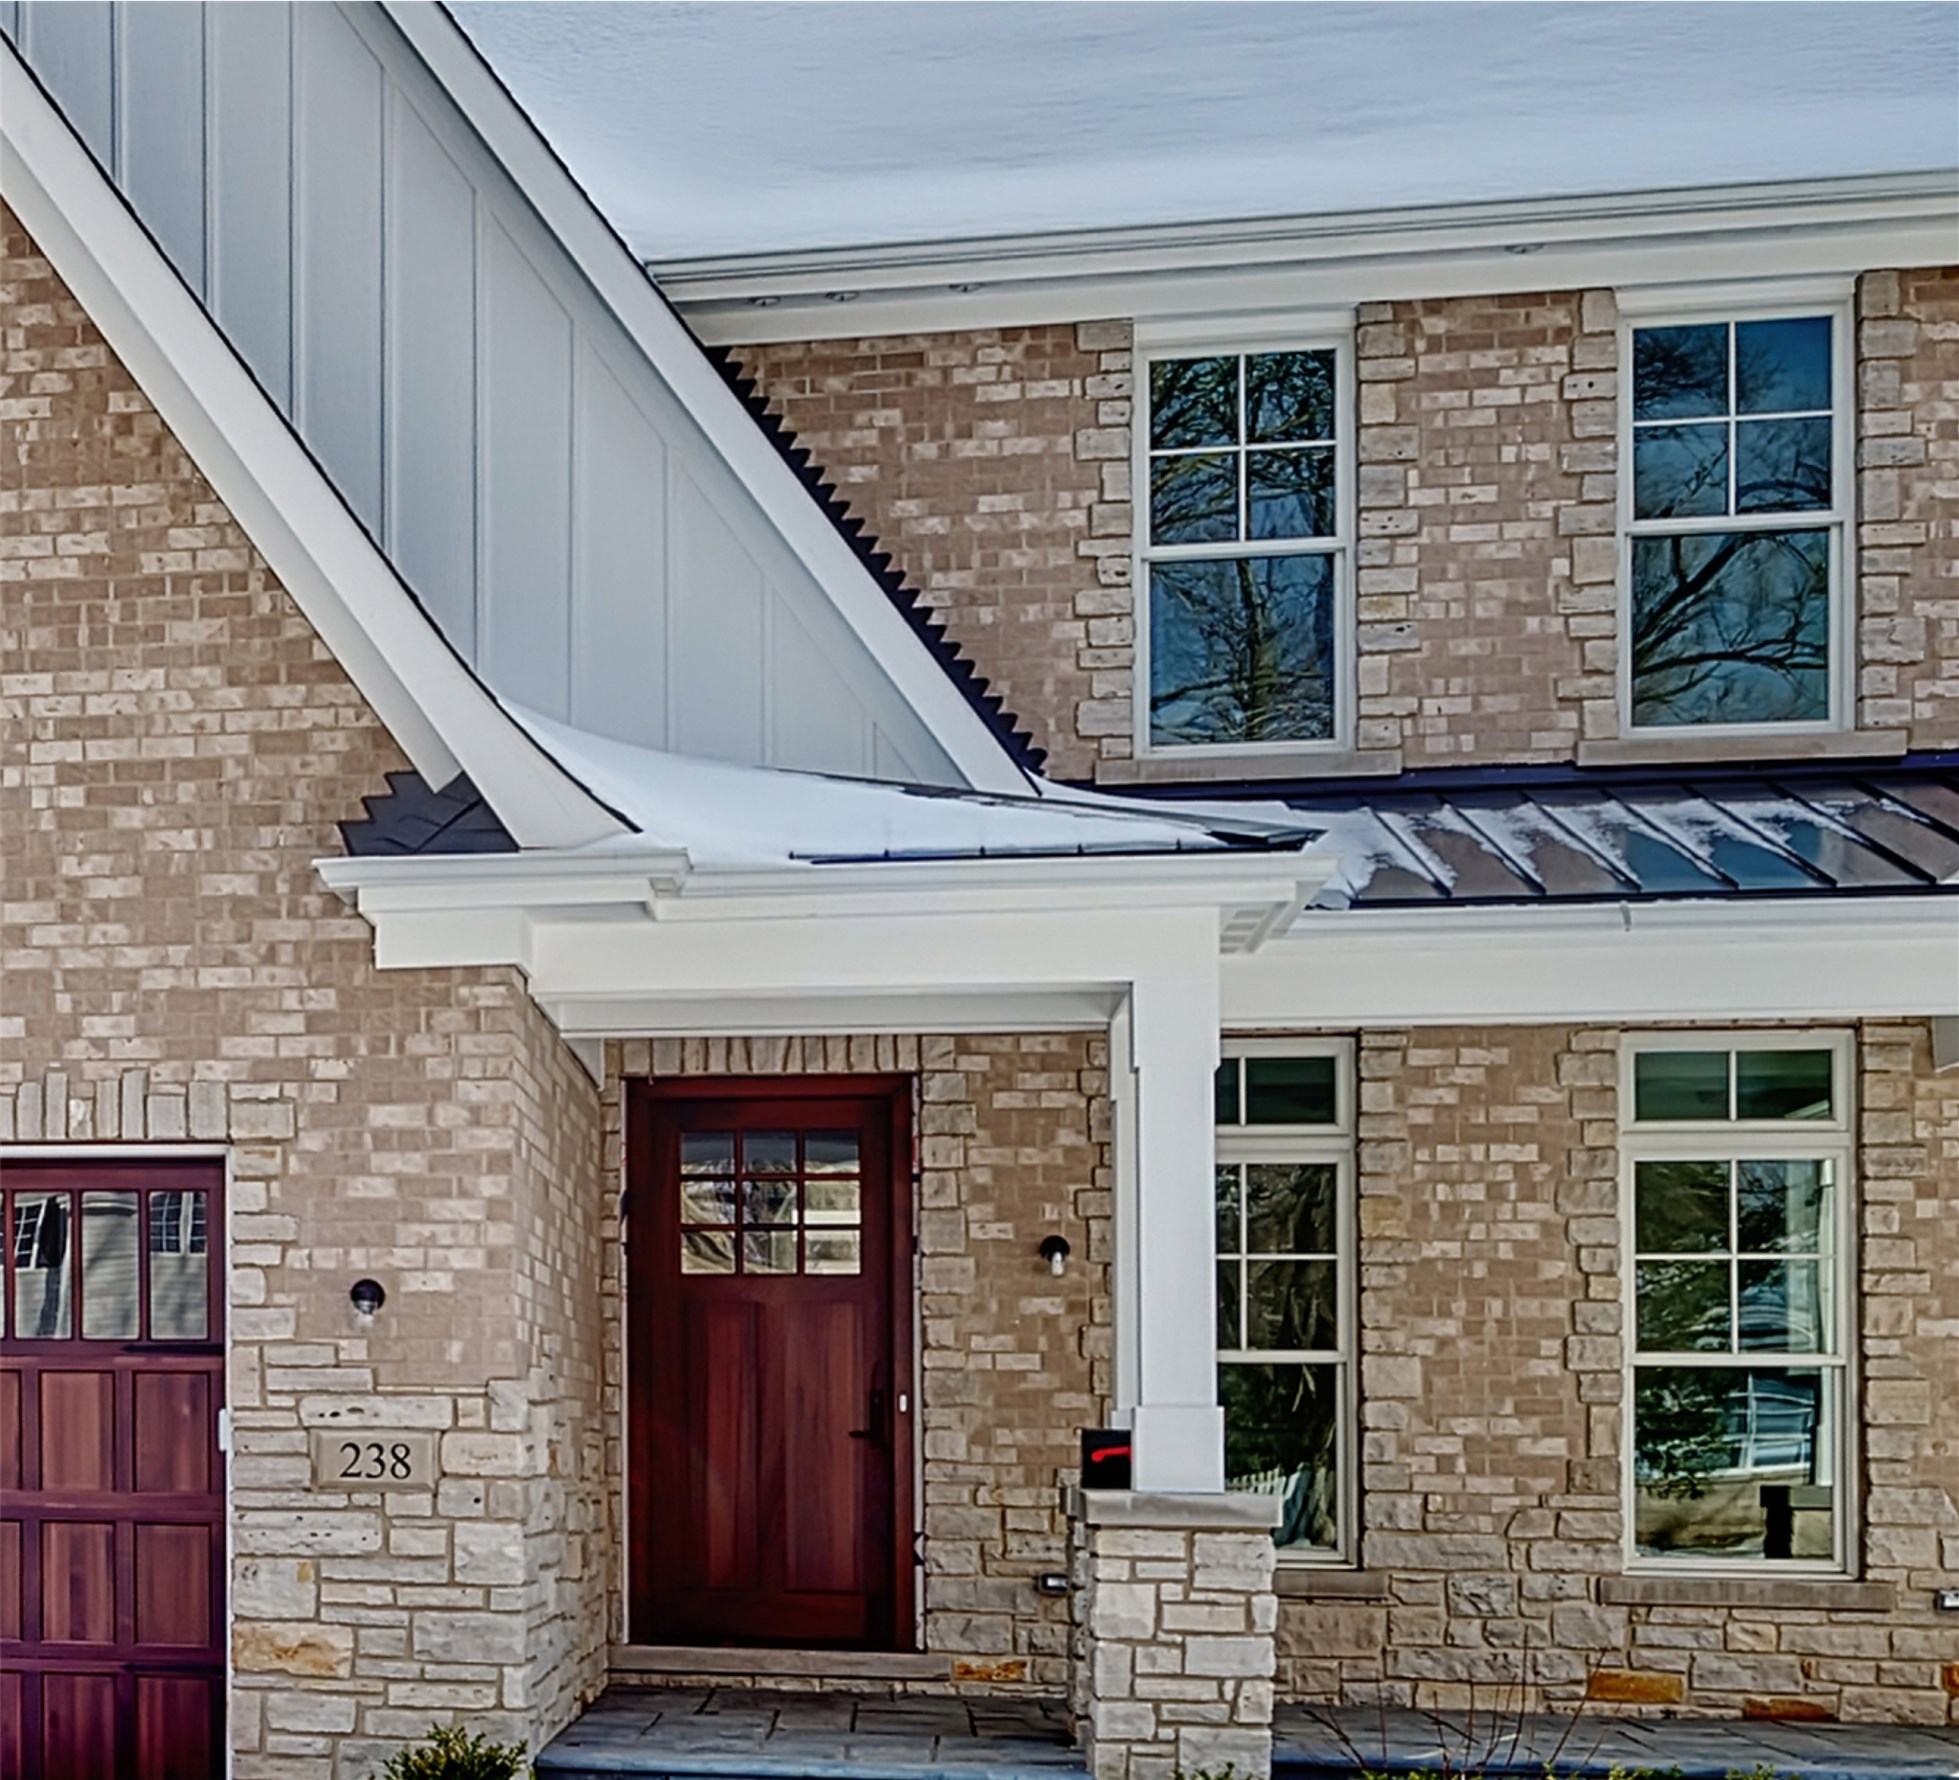 Single Family Home for Sale at 238 Fuller Rd. Hinsdale, Illinois 60521 United States